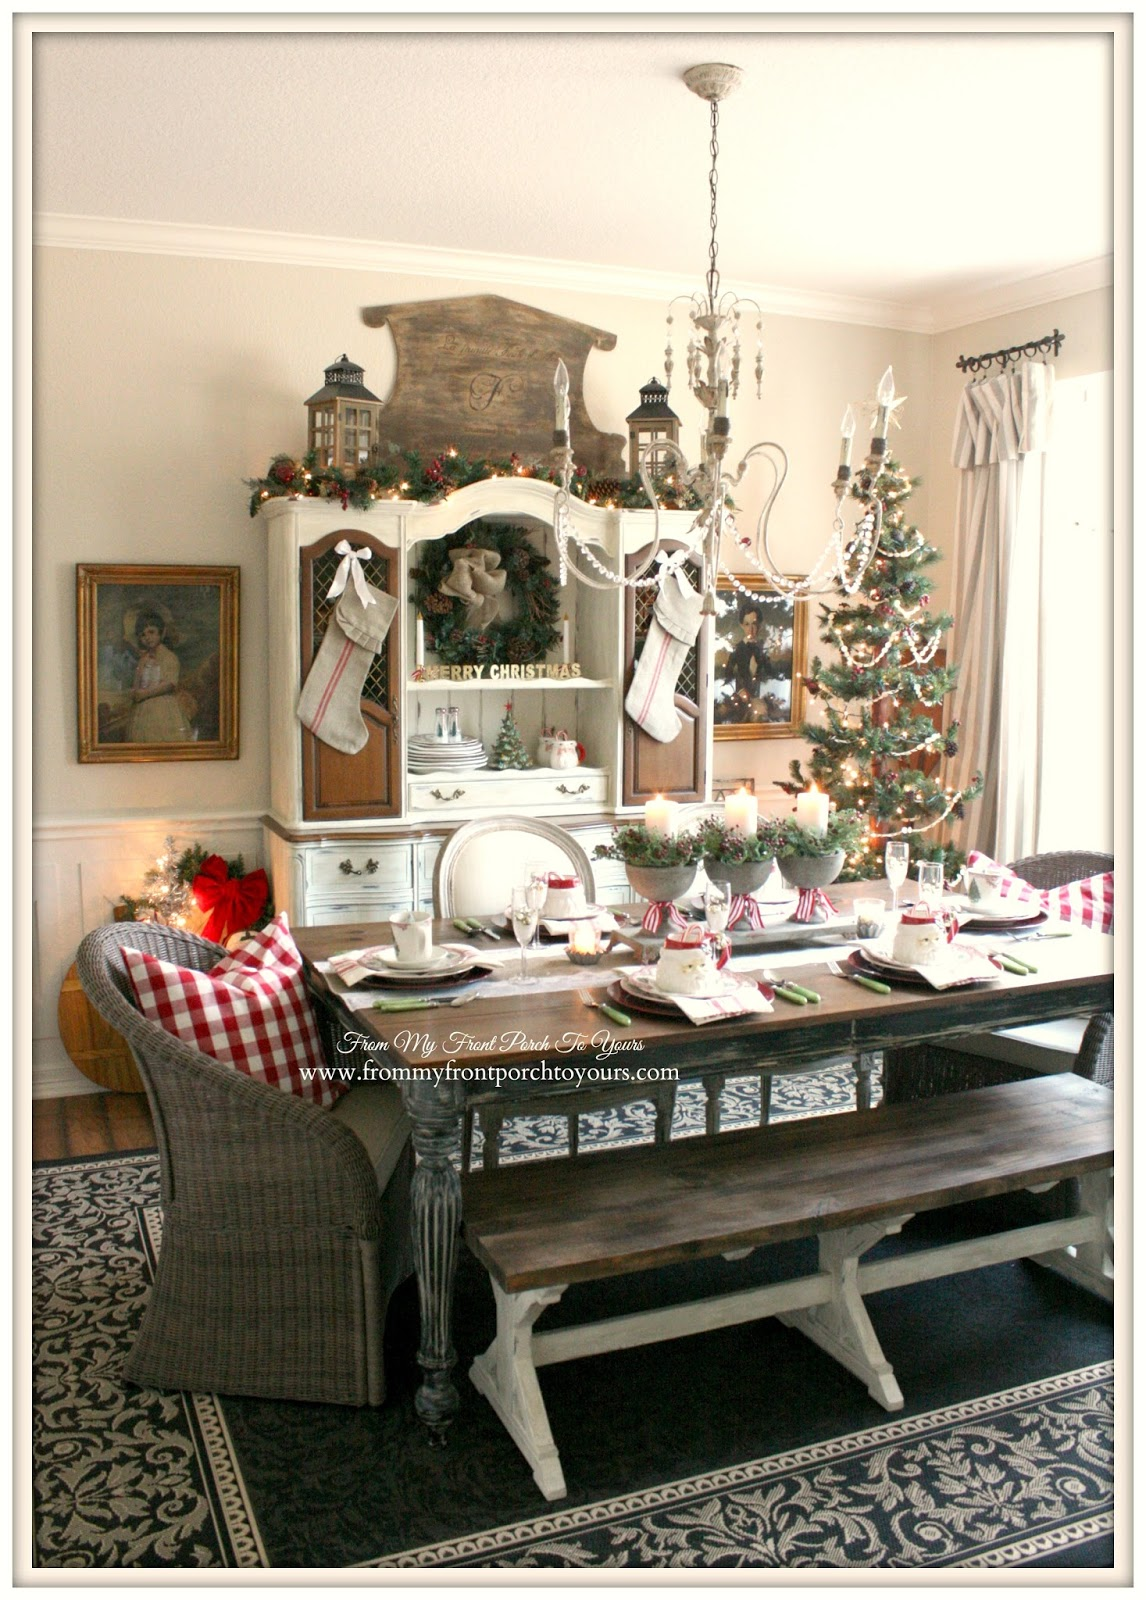 From my front porch to yours french farmhouse vintage for Farmhouse dining room ideas